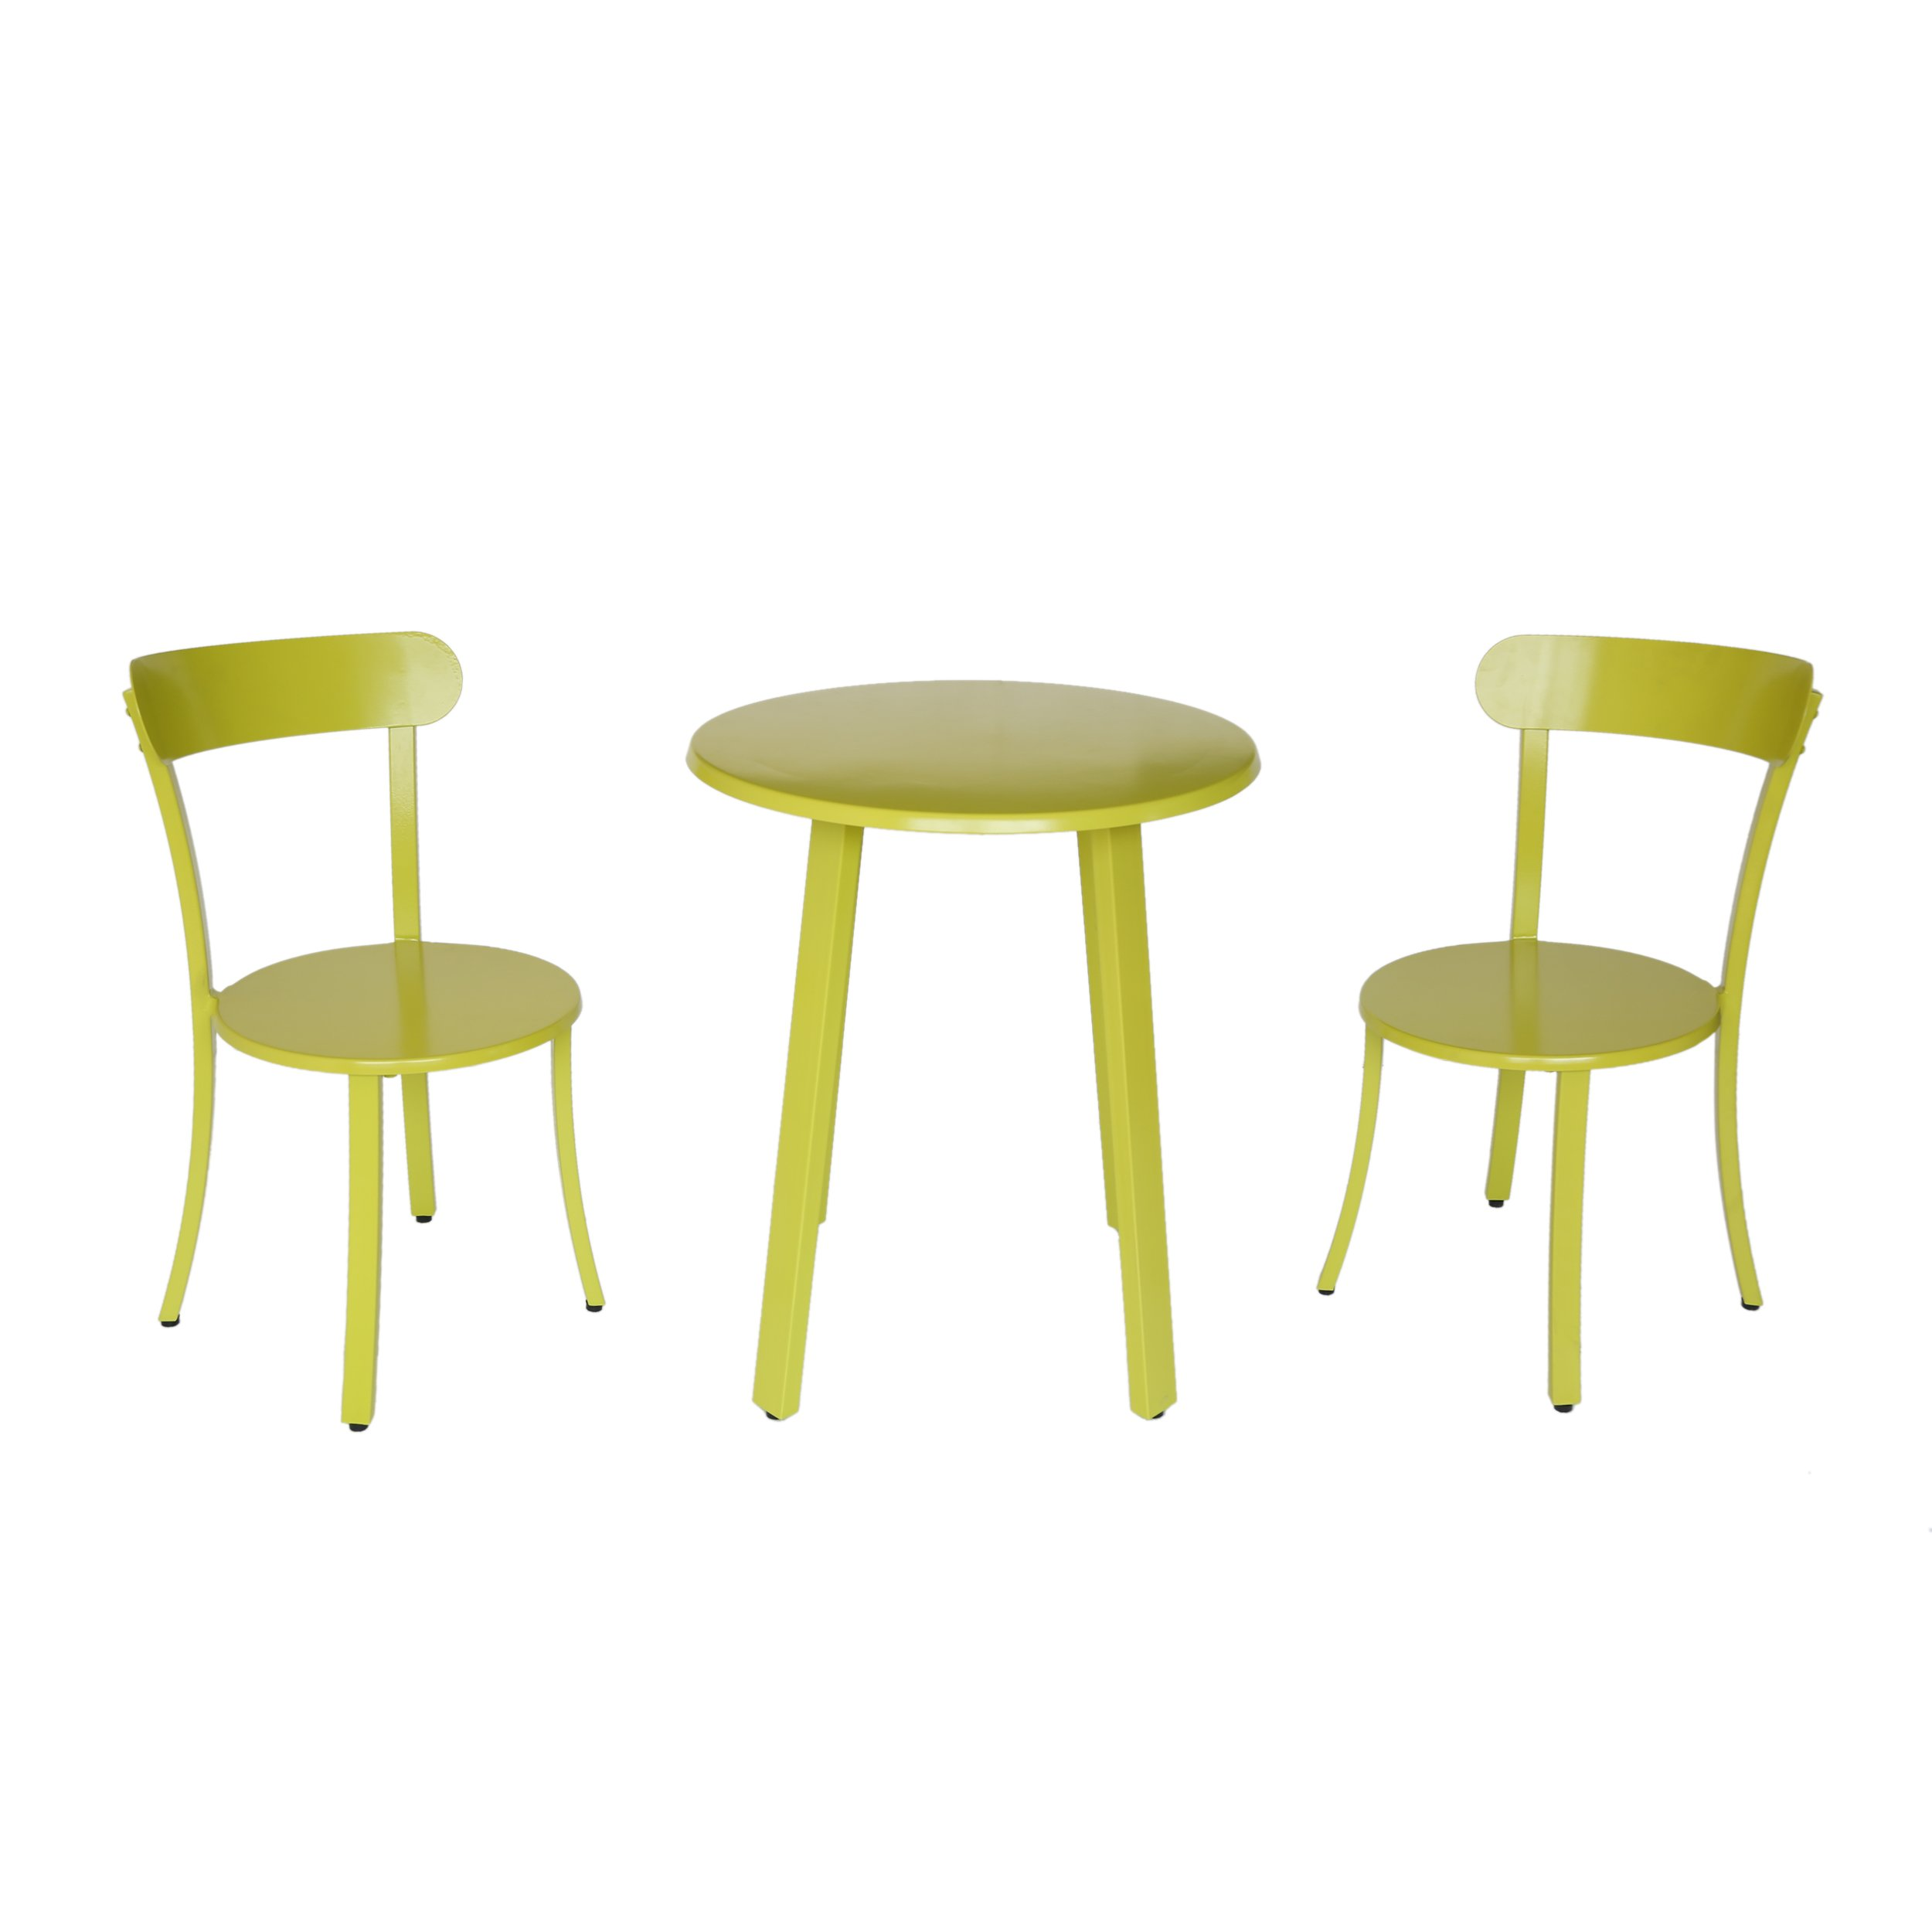 Christopher Knight Home Larson Outdoor Bistro Set, Matte Lime Green